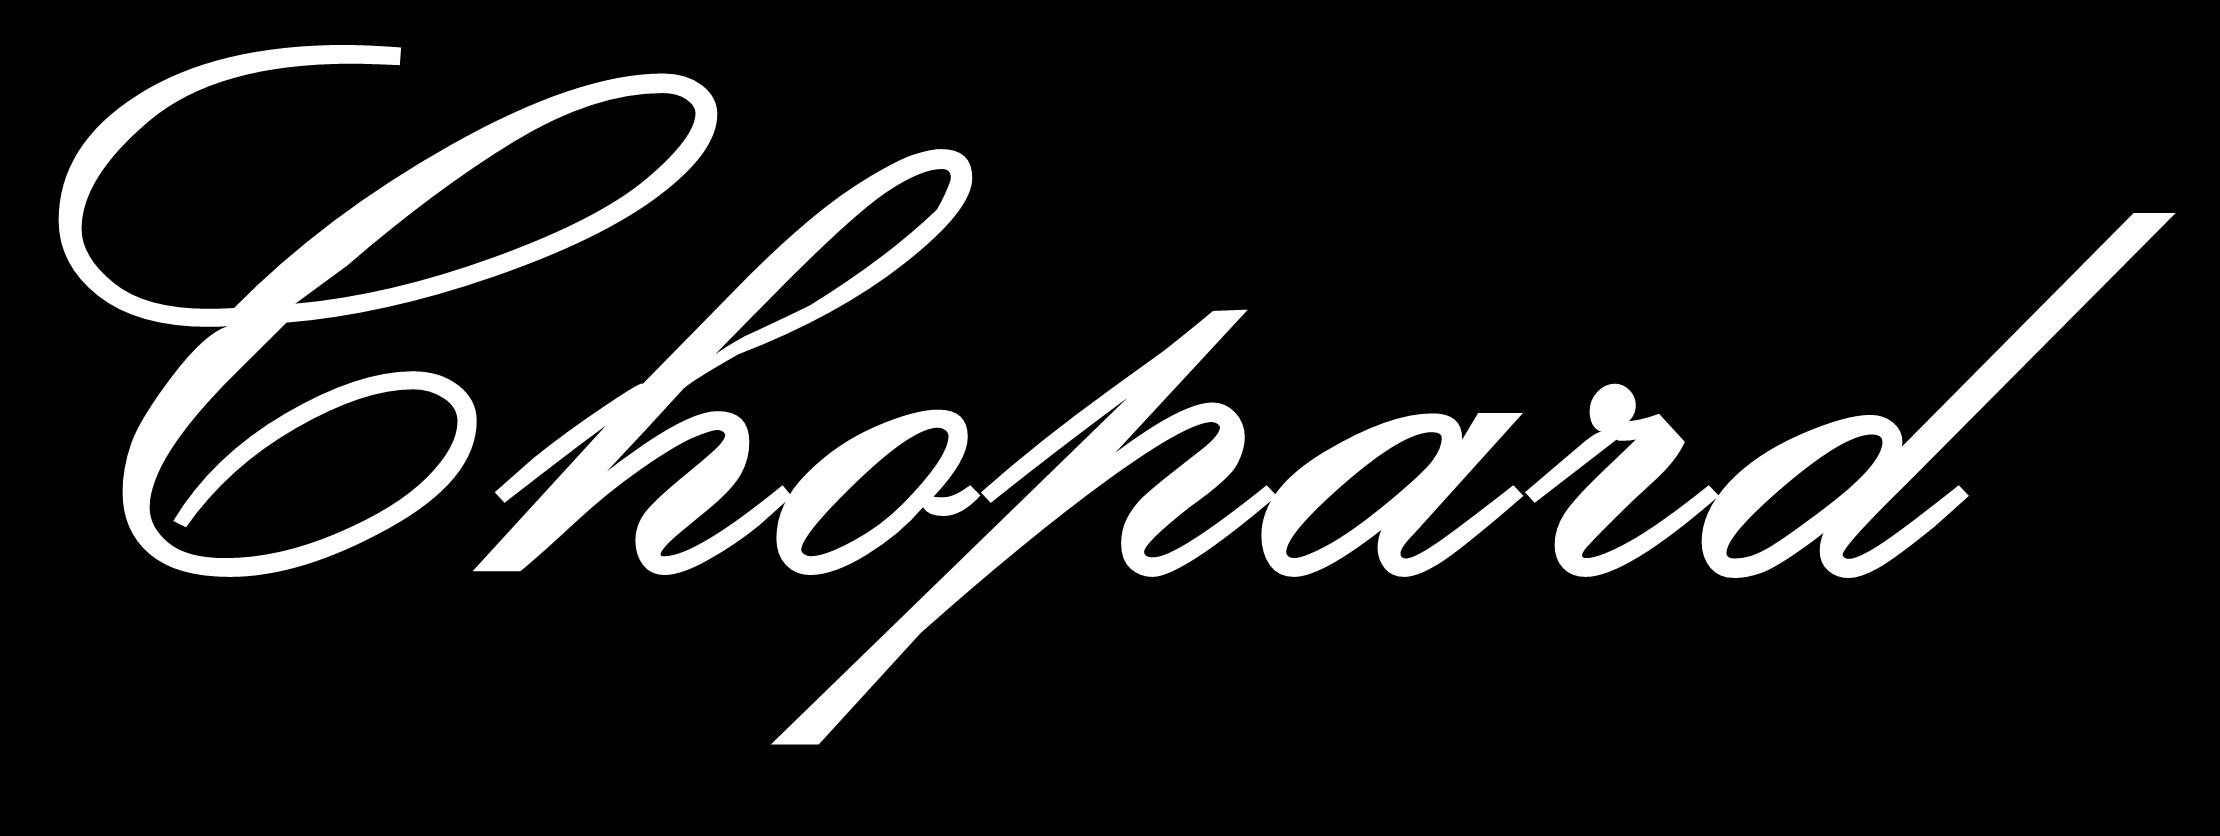 Chopard-logo-wallpaper.jpg